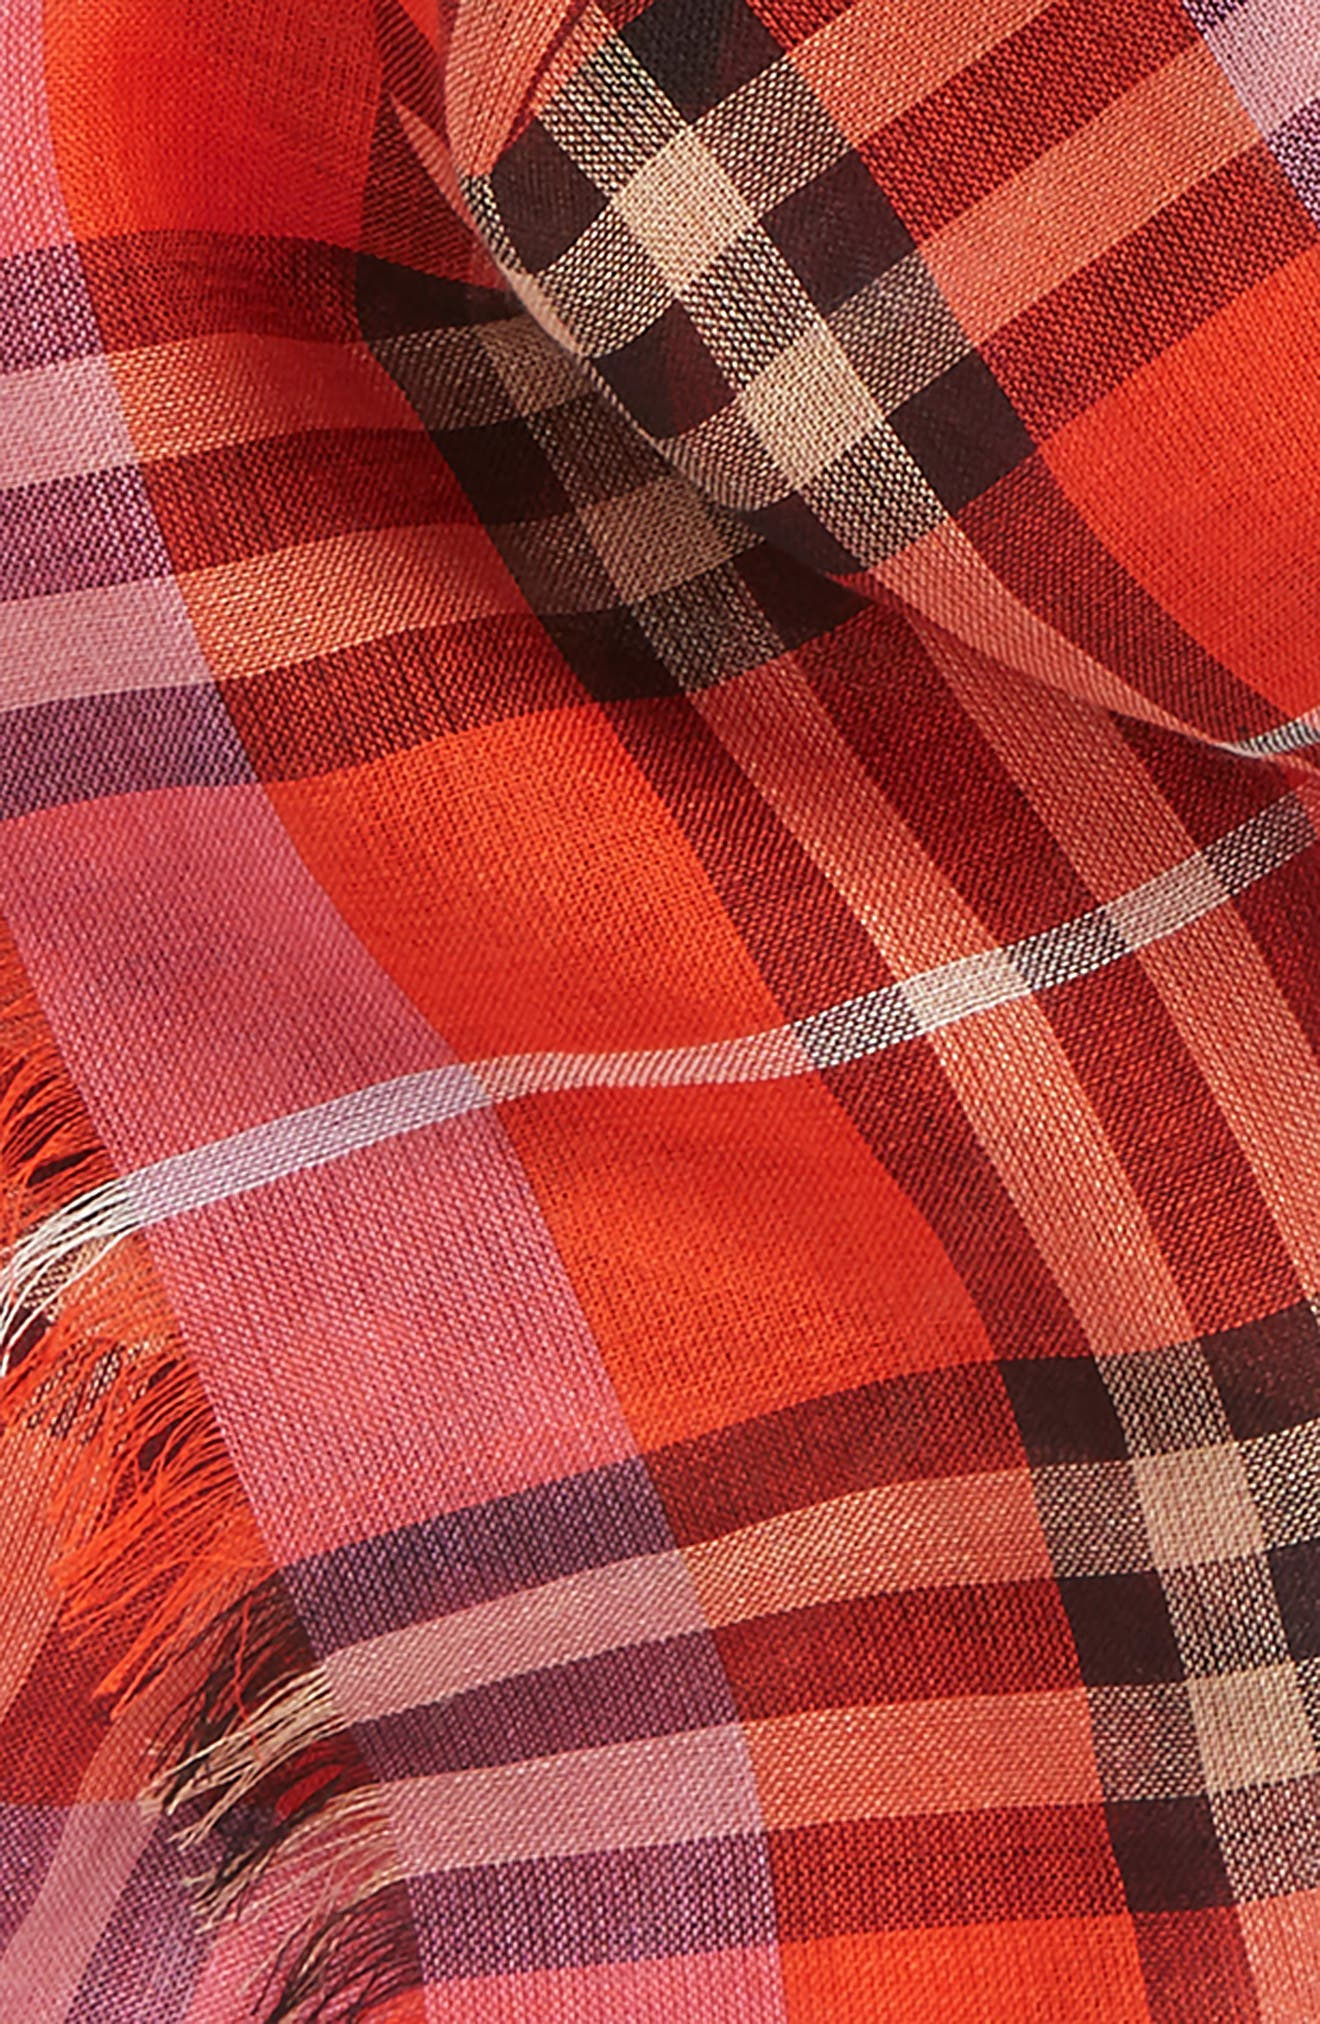 Vintage Check Wool & Silk Blend Scarf,                             Alternate thumbnail 3, color,                             821